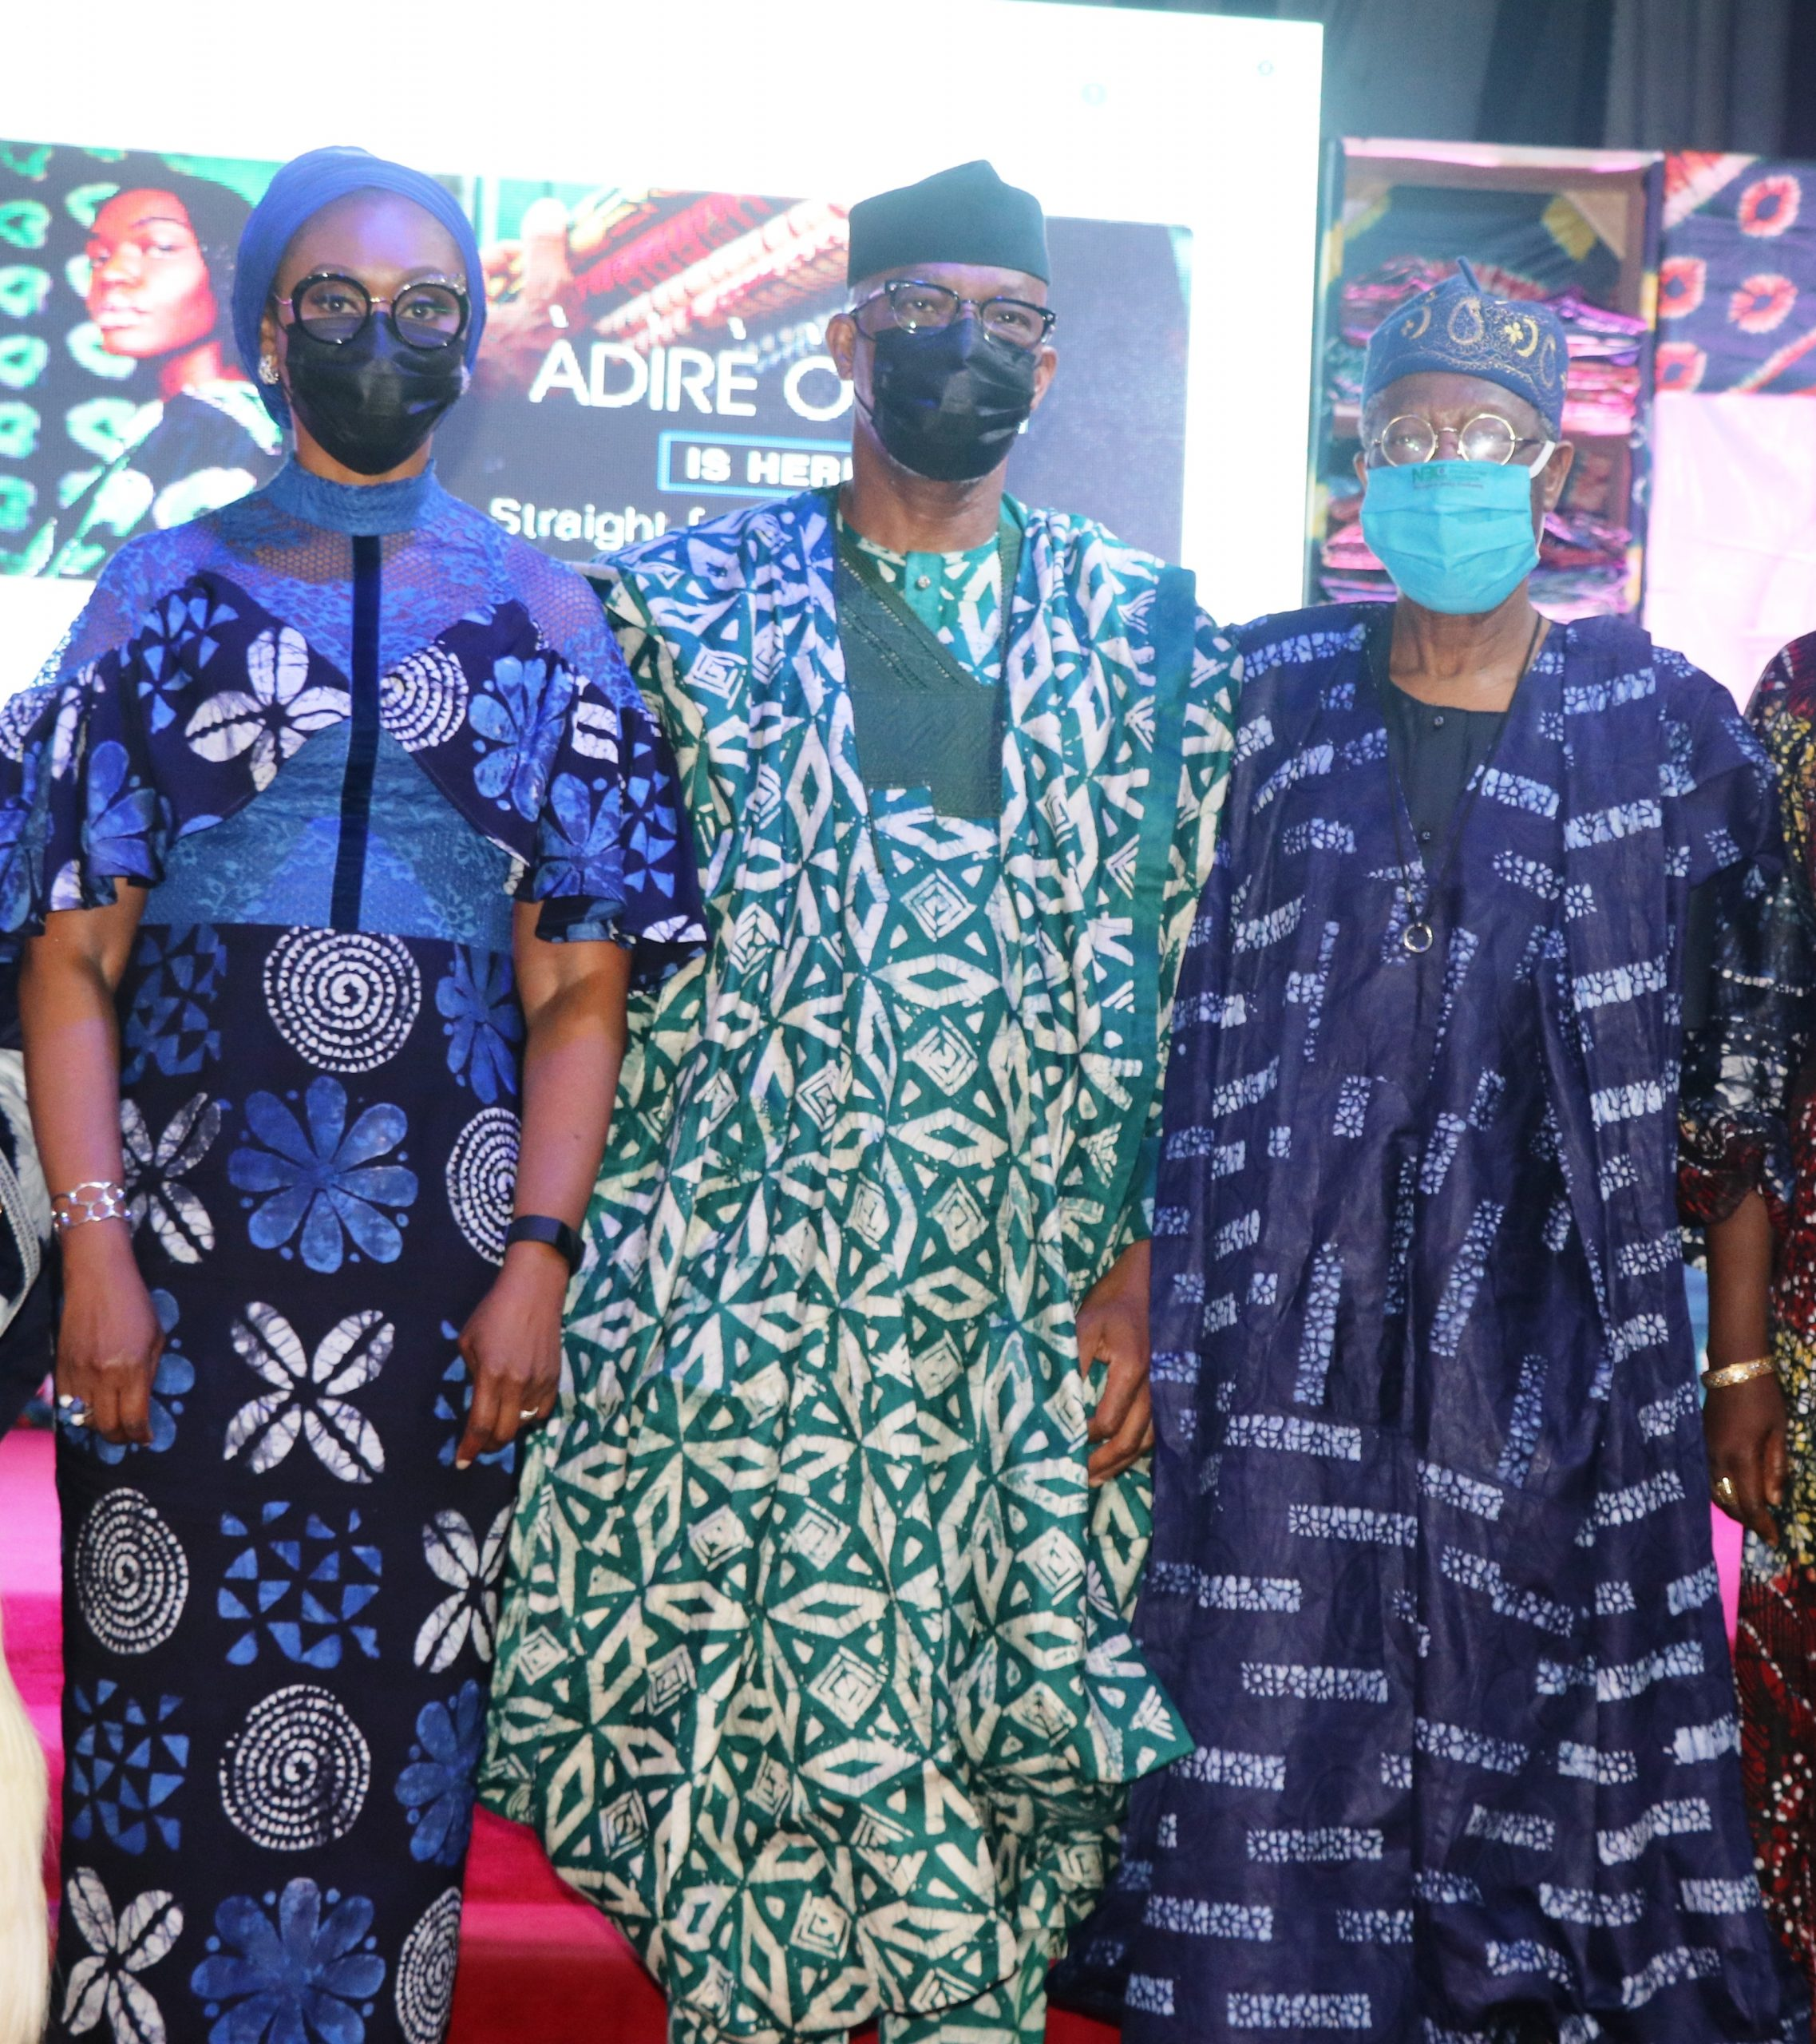 Minister Hails Launch of Digital Platform To Market Tie and Dye Fabrics